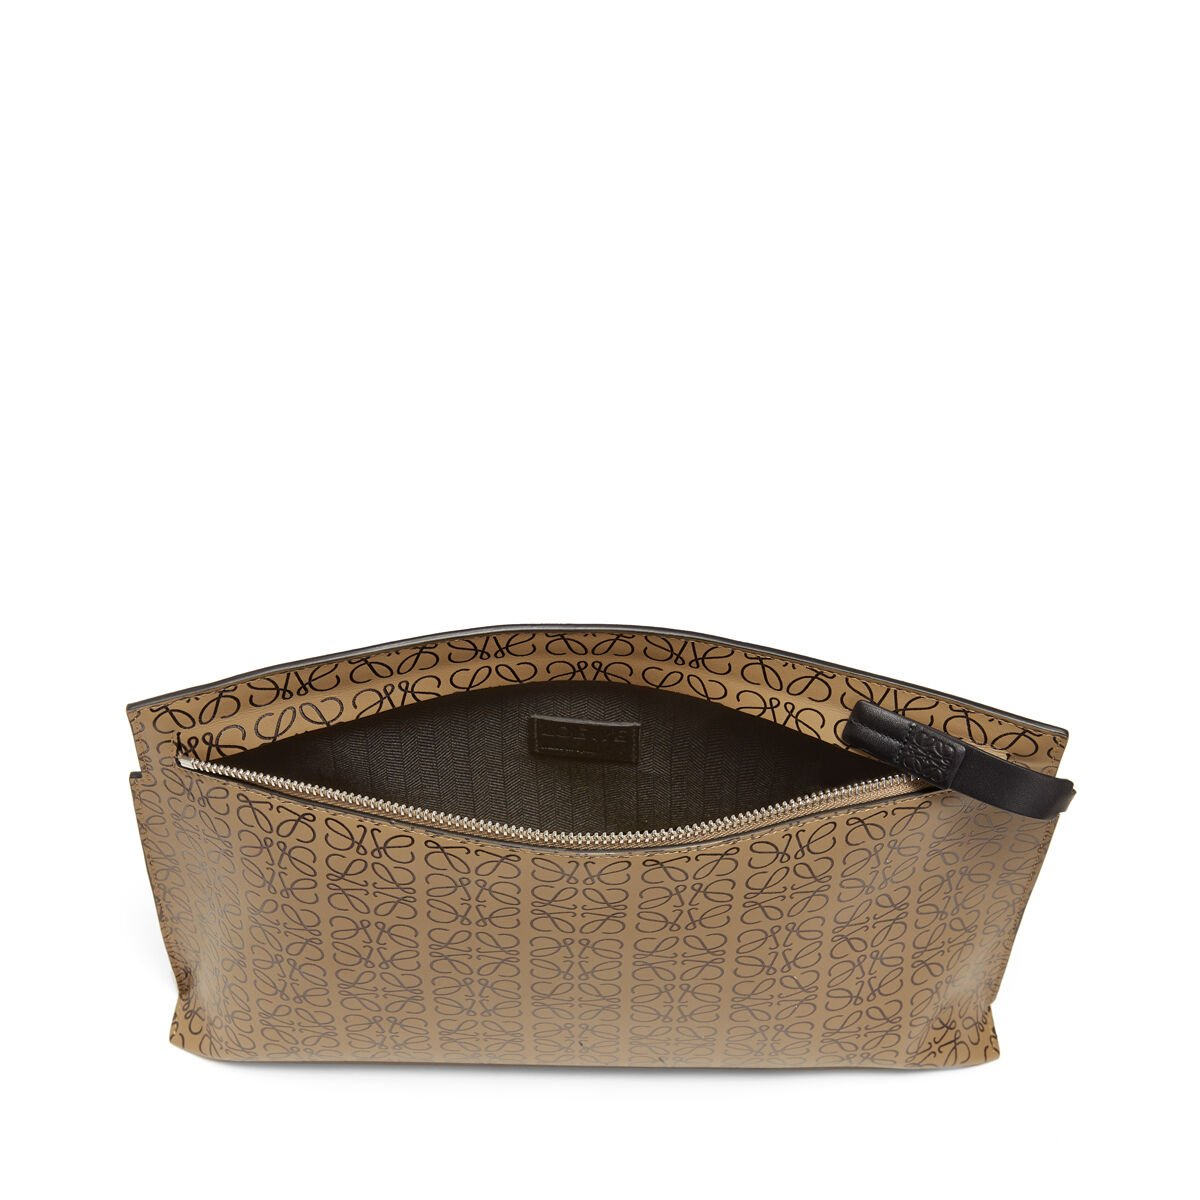 LOEWE T Pouch Repeat Mocca/Negro all